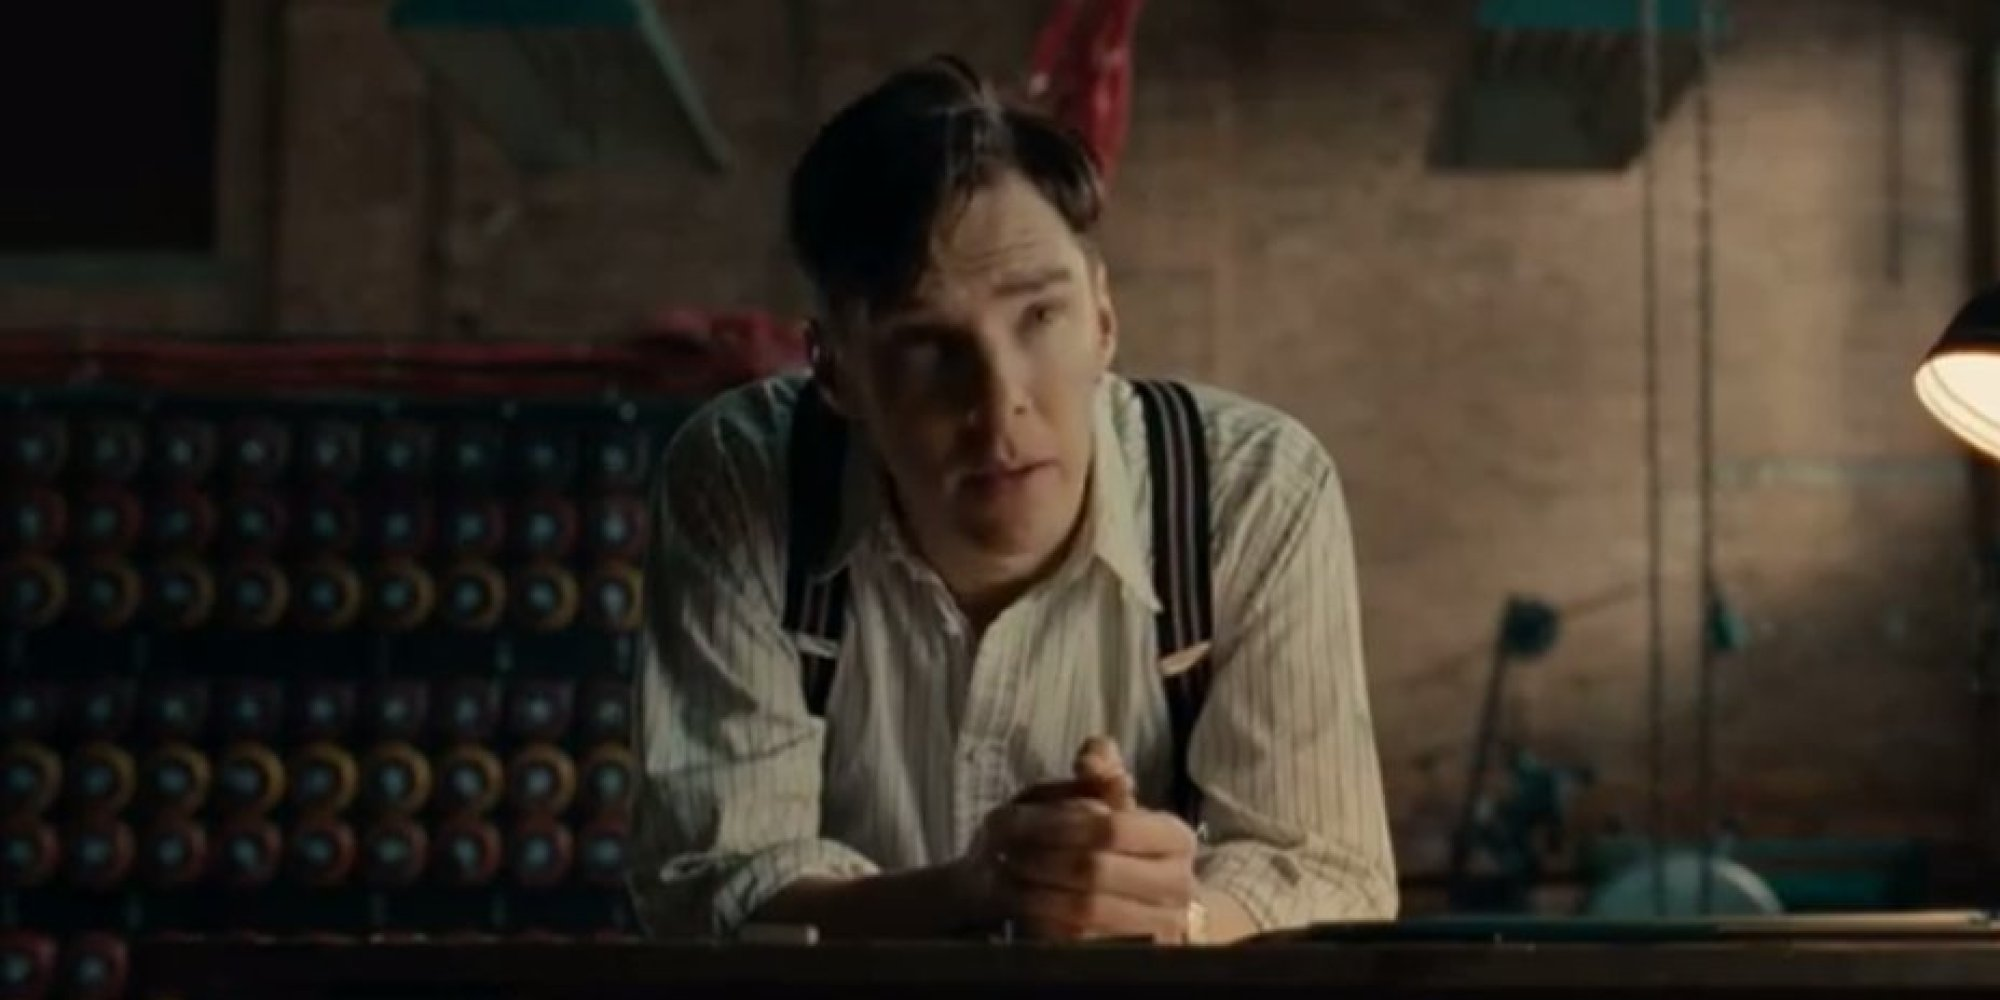 Benedict Cumberbatch starred in The Imitation Game